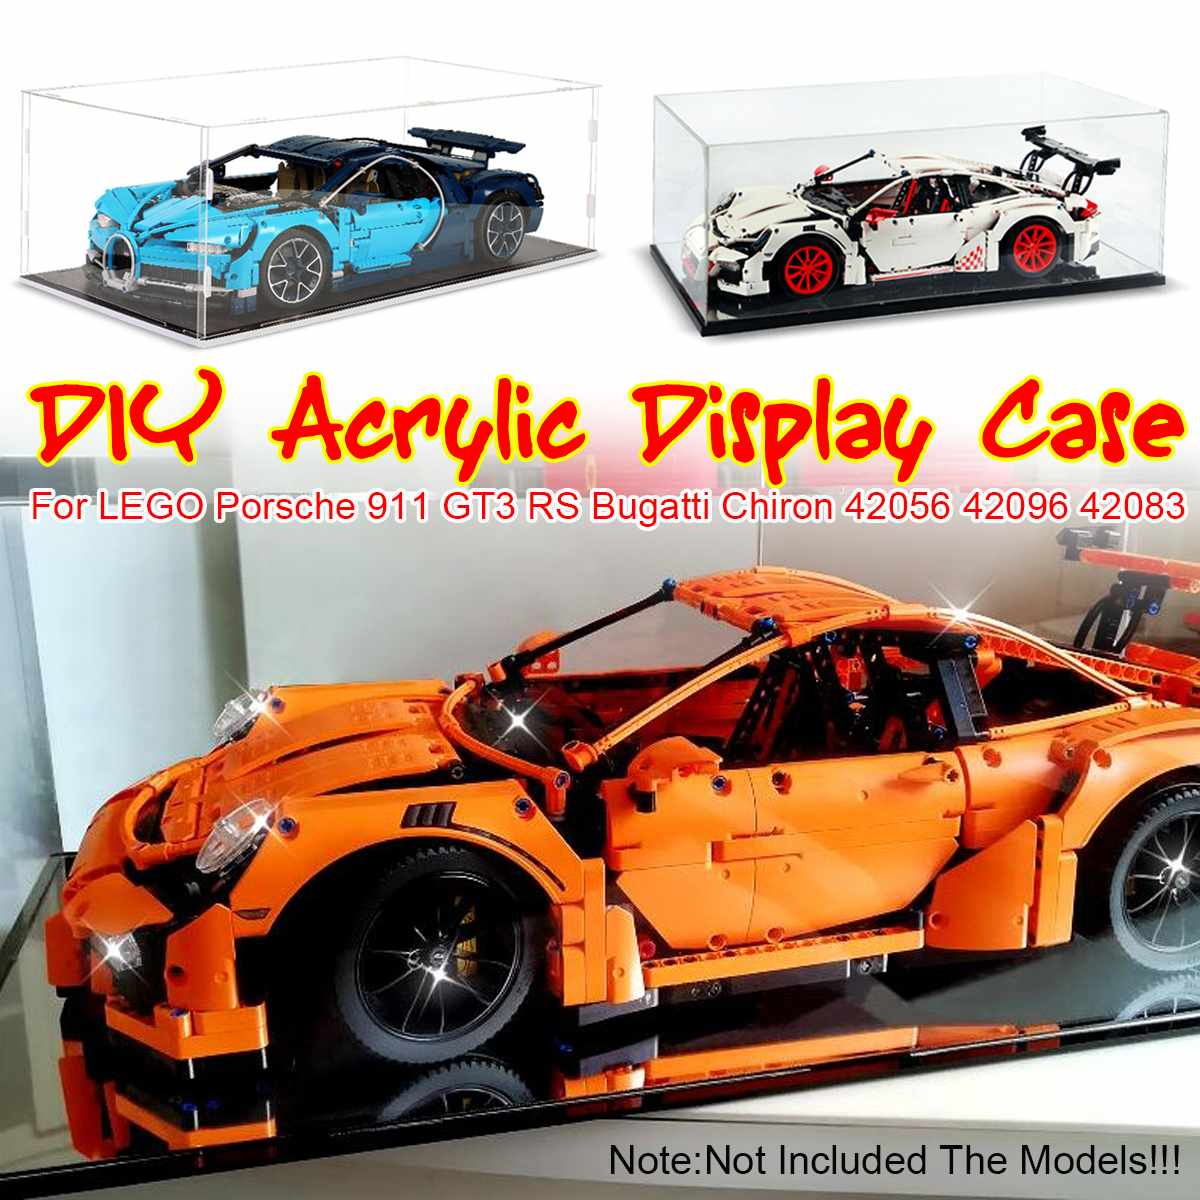 Acrylic Display Case for <font><b>Lego</b></font> <font><b>42056</b></font> for Bugatti Chiron for Porsche 911 GT3 RS Technic Series Toy Bricks ( Model not Included) image